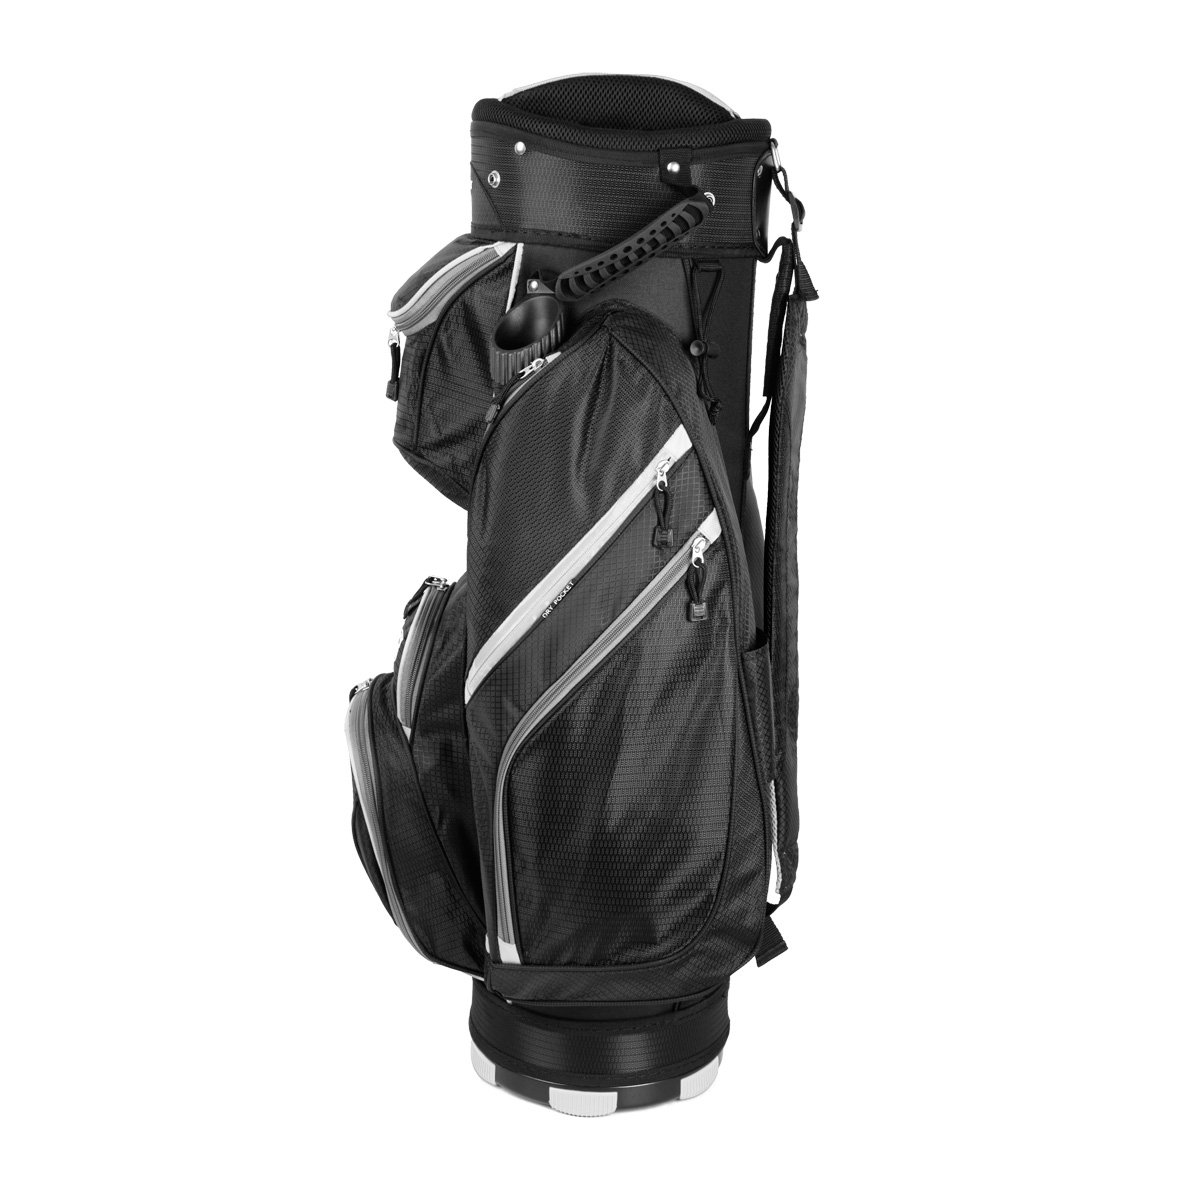 Powerbilt Tps 5400 black/Cart Golf Bag by PowerBilt (Image #2)